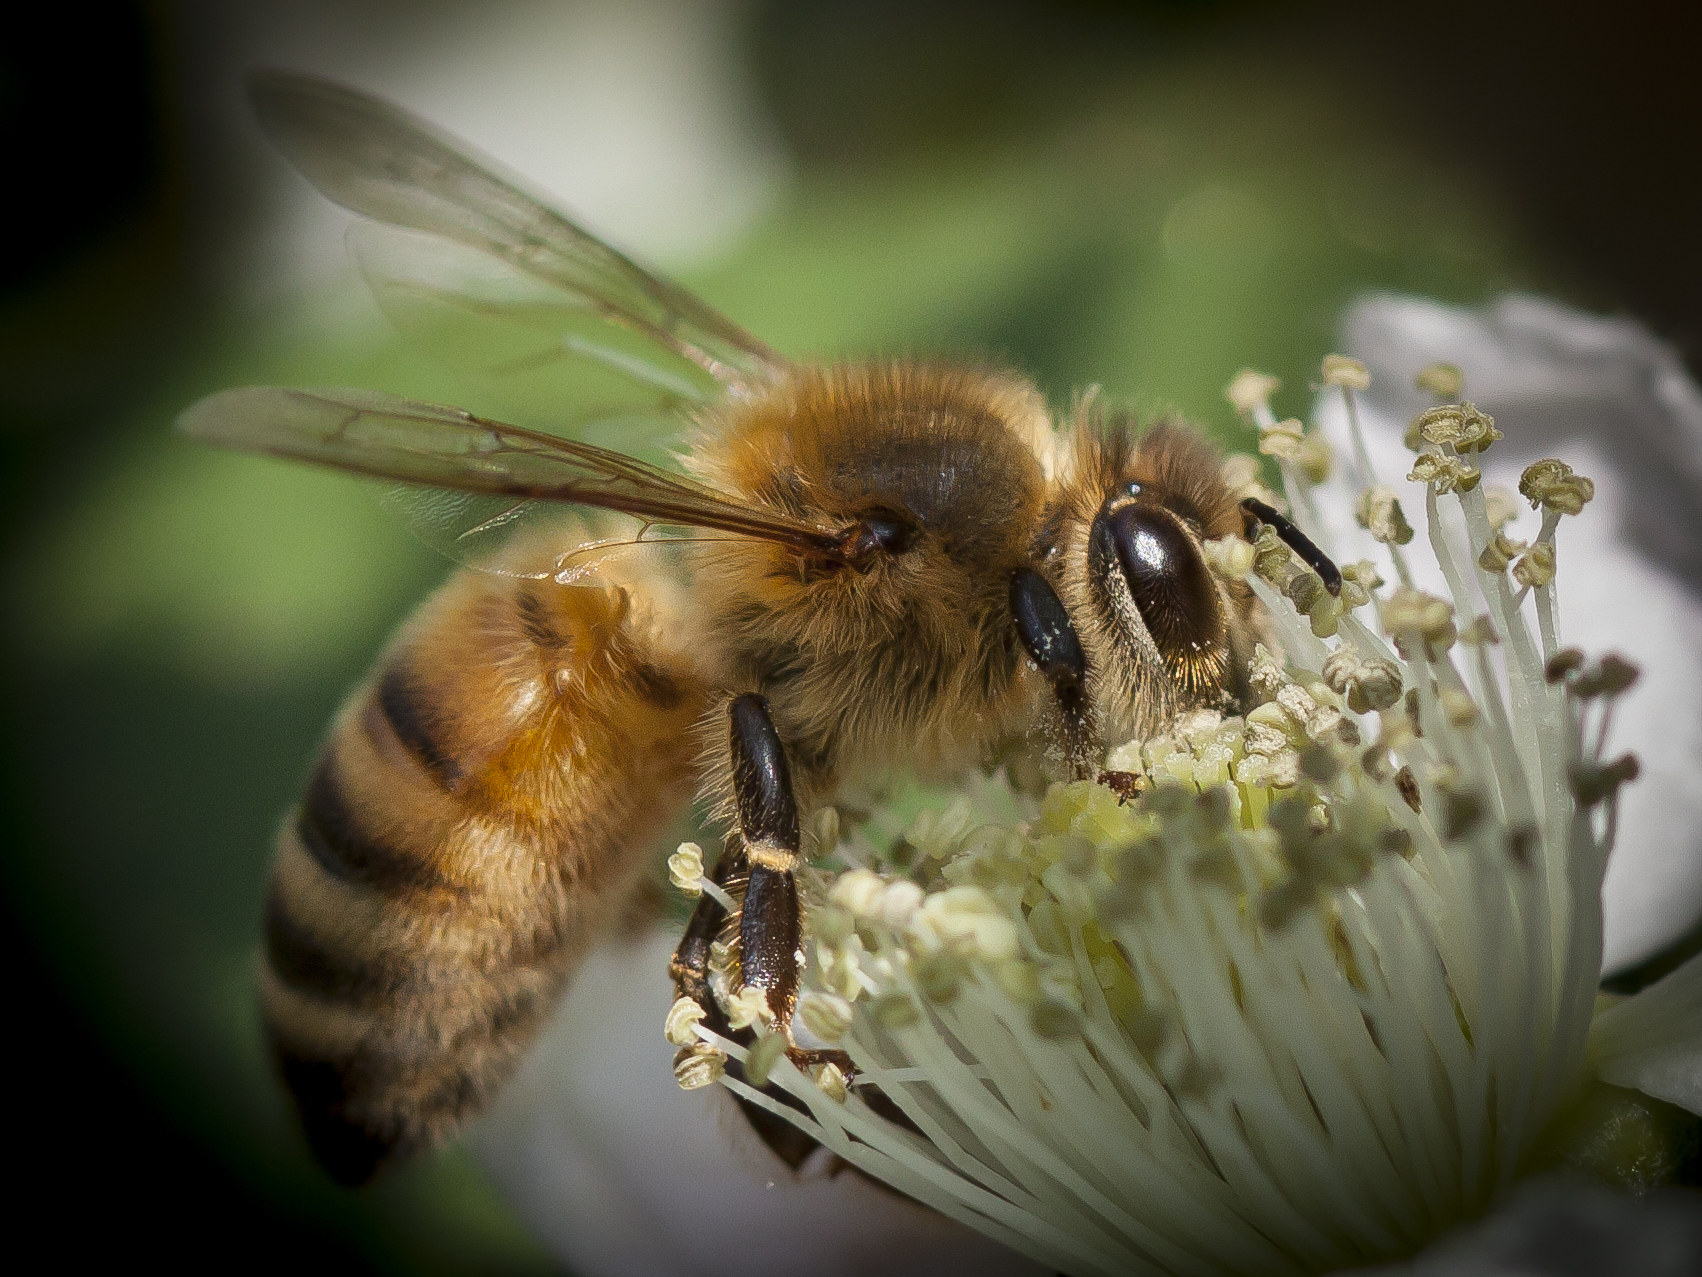 A honey bee pollinates a flower.